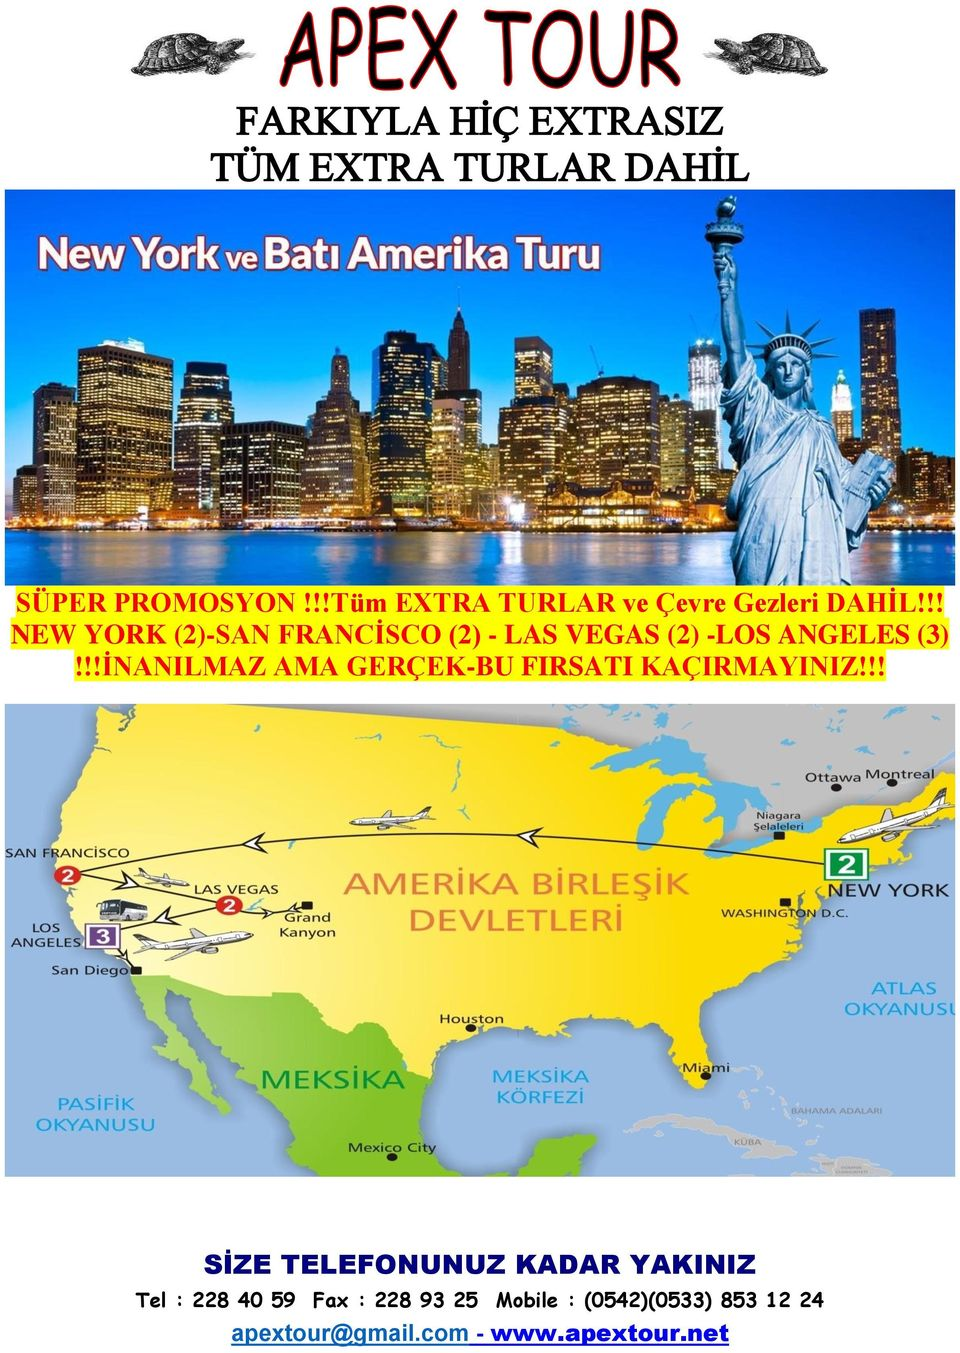 !! NEW YORK (2)-SAN FRANCİSCO (2) - LAS